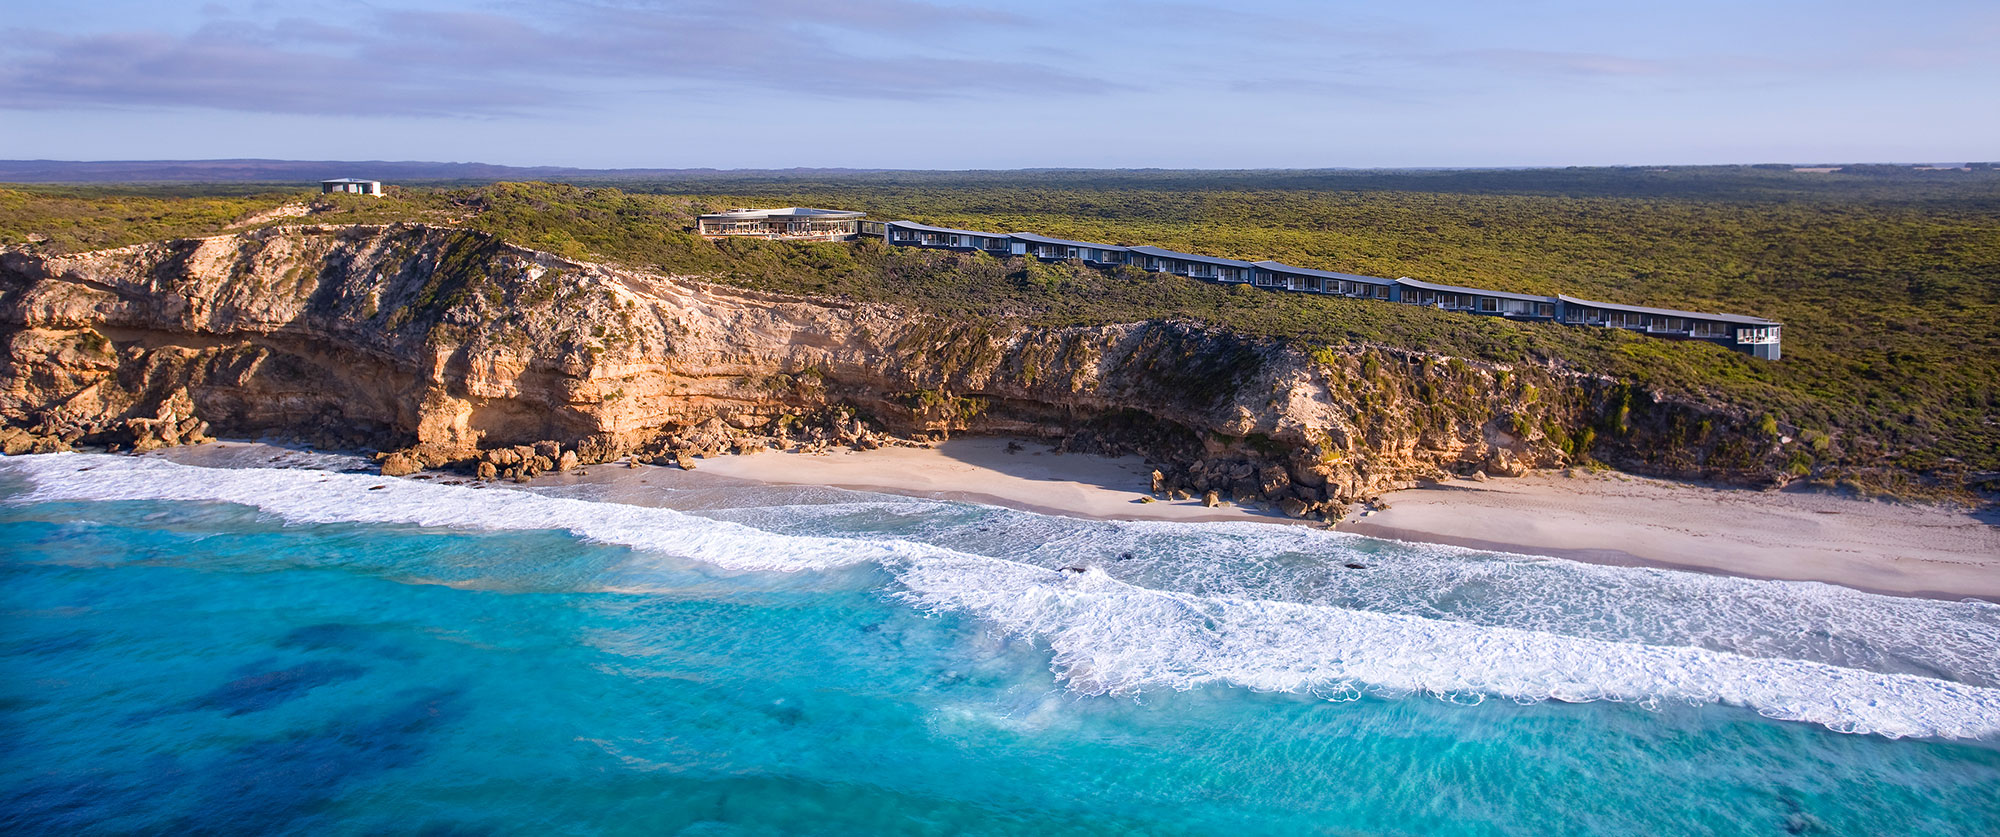 Australia Luxury Vacations: Unique Resorts Package - Southern Ocean Lodge